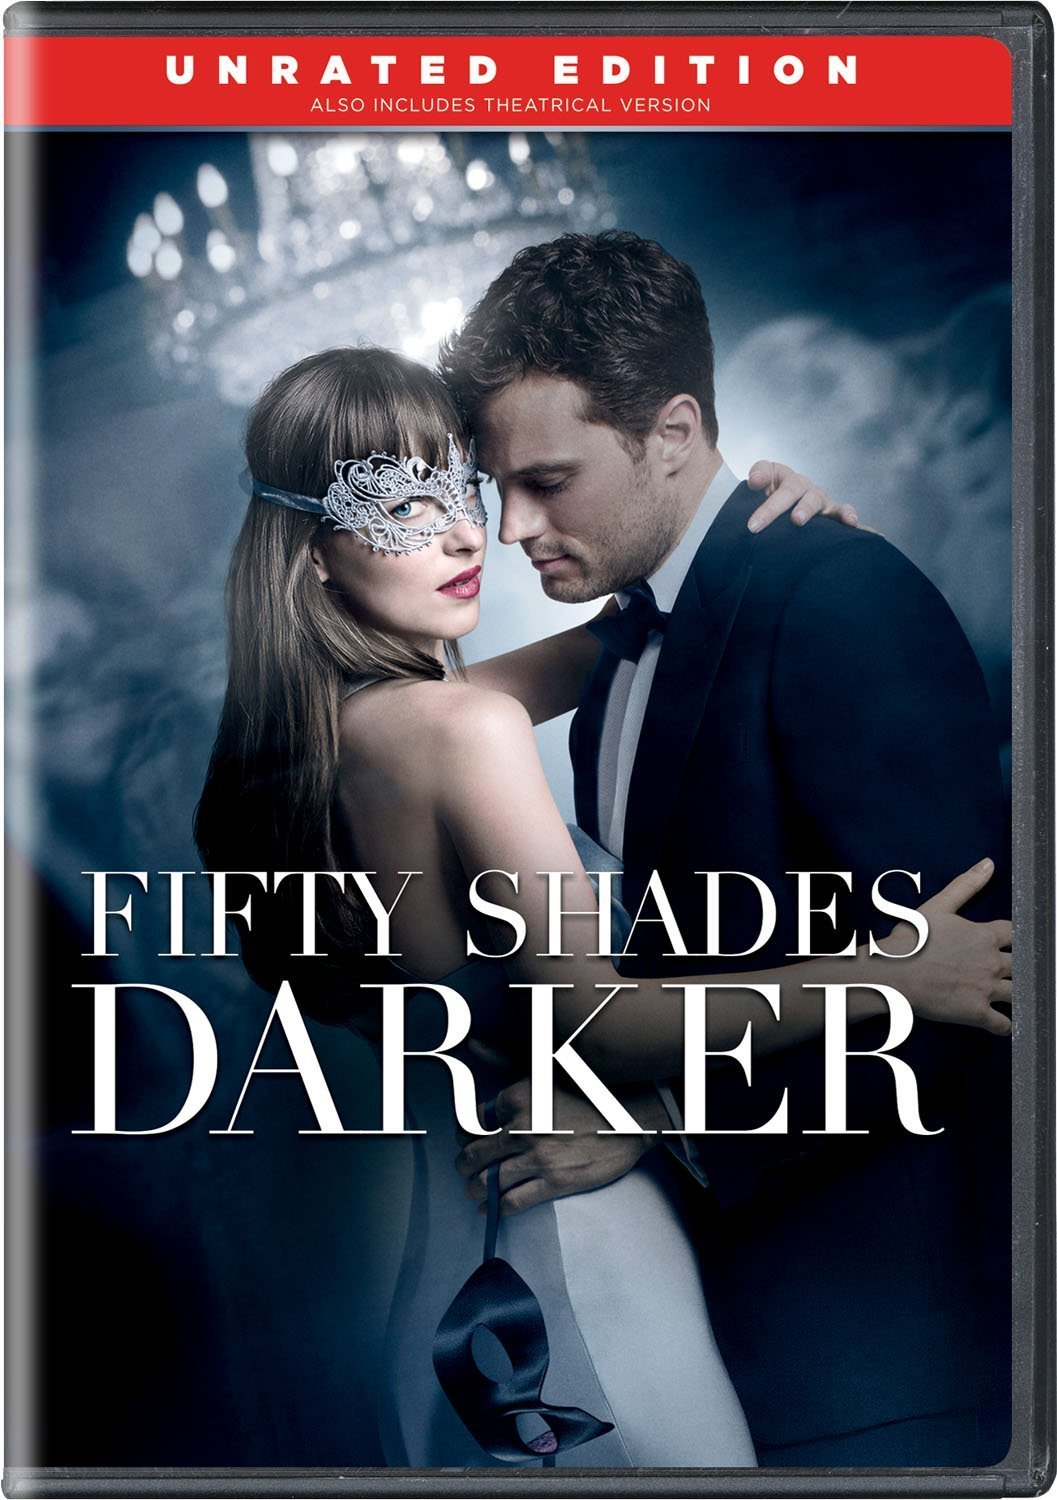 Fifty Shades Darker - Unrated Edition (2017, DVD)